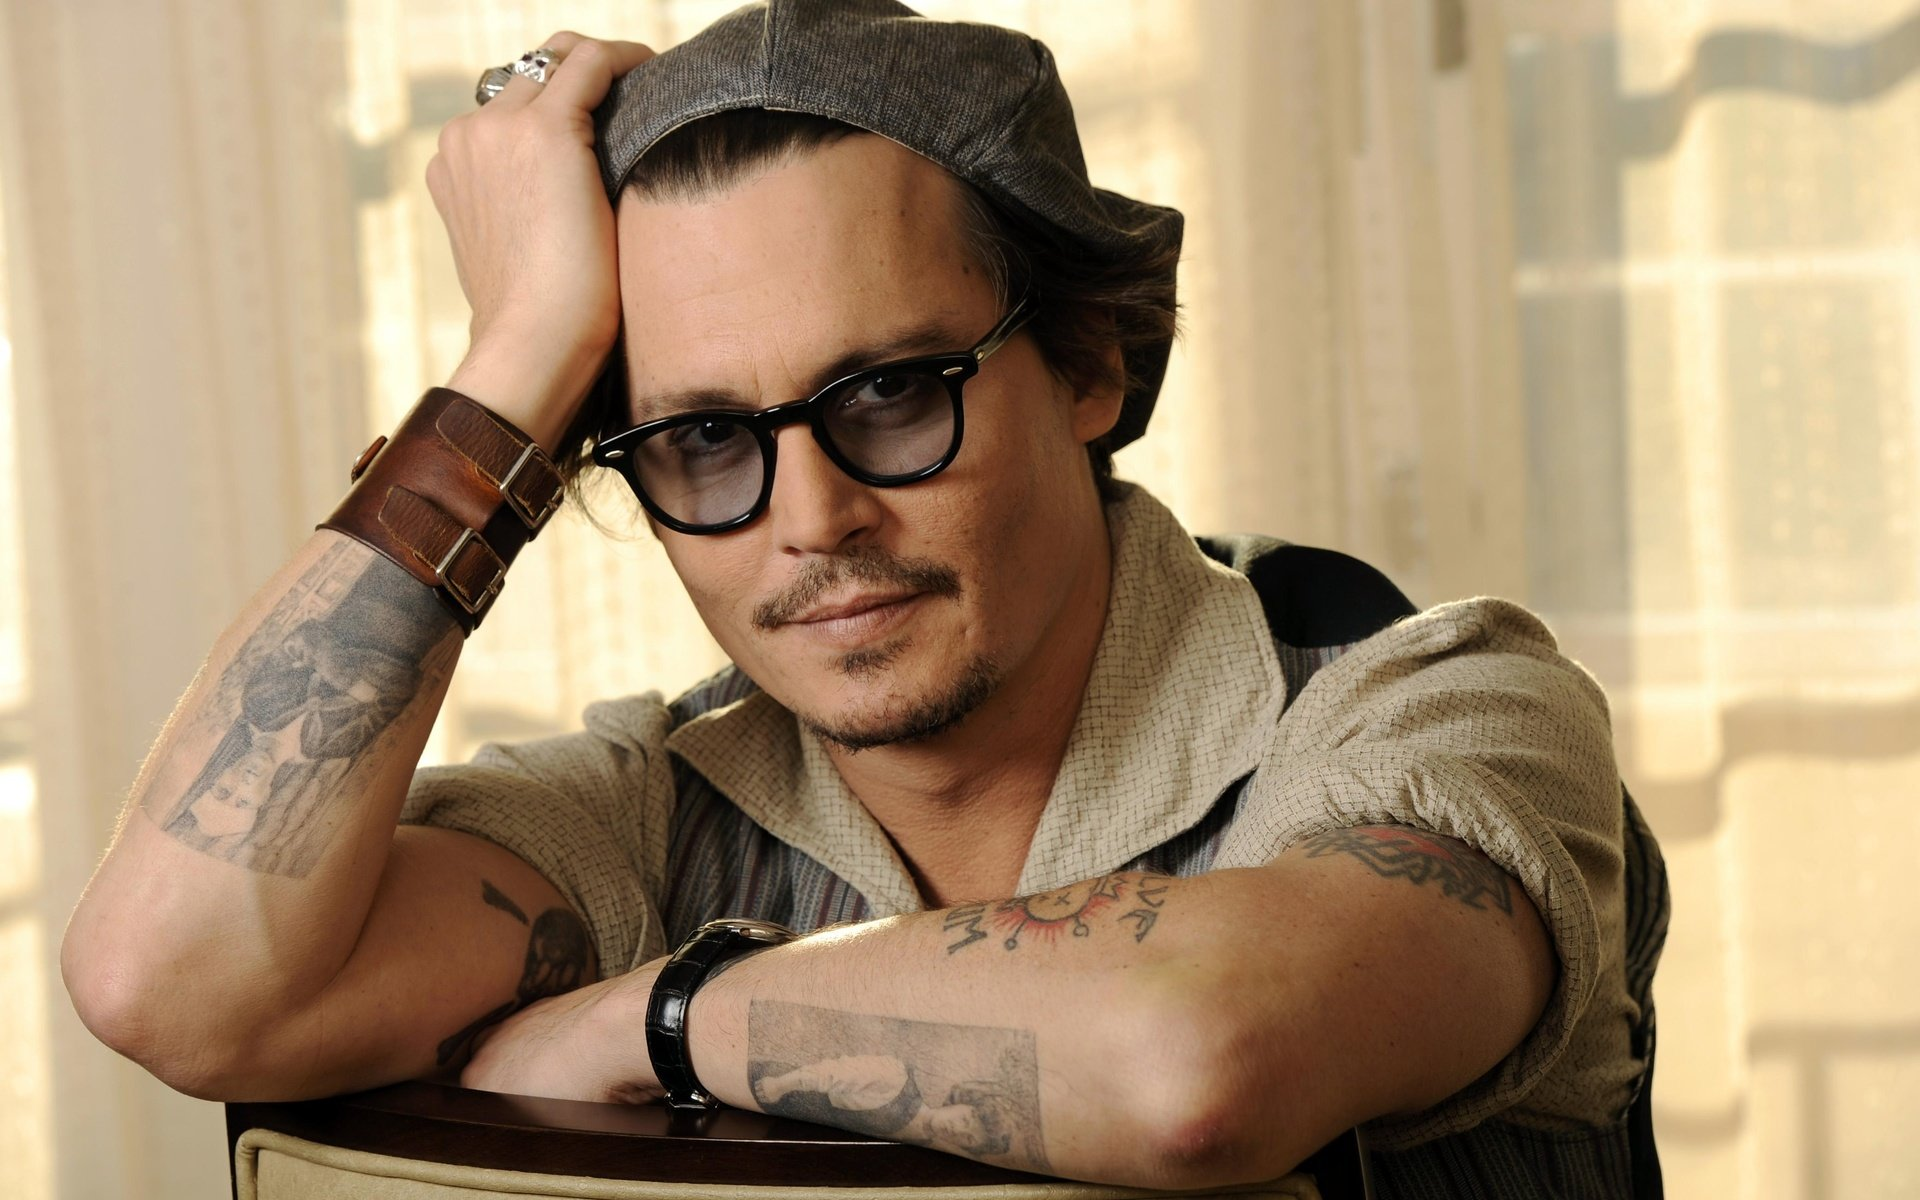 Awesome Johnny Depp free wallpaper ID:26694 for hd 1920x1200 desktop